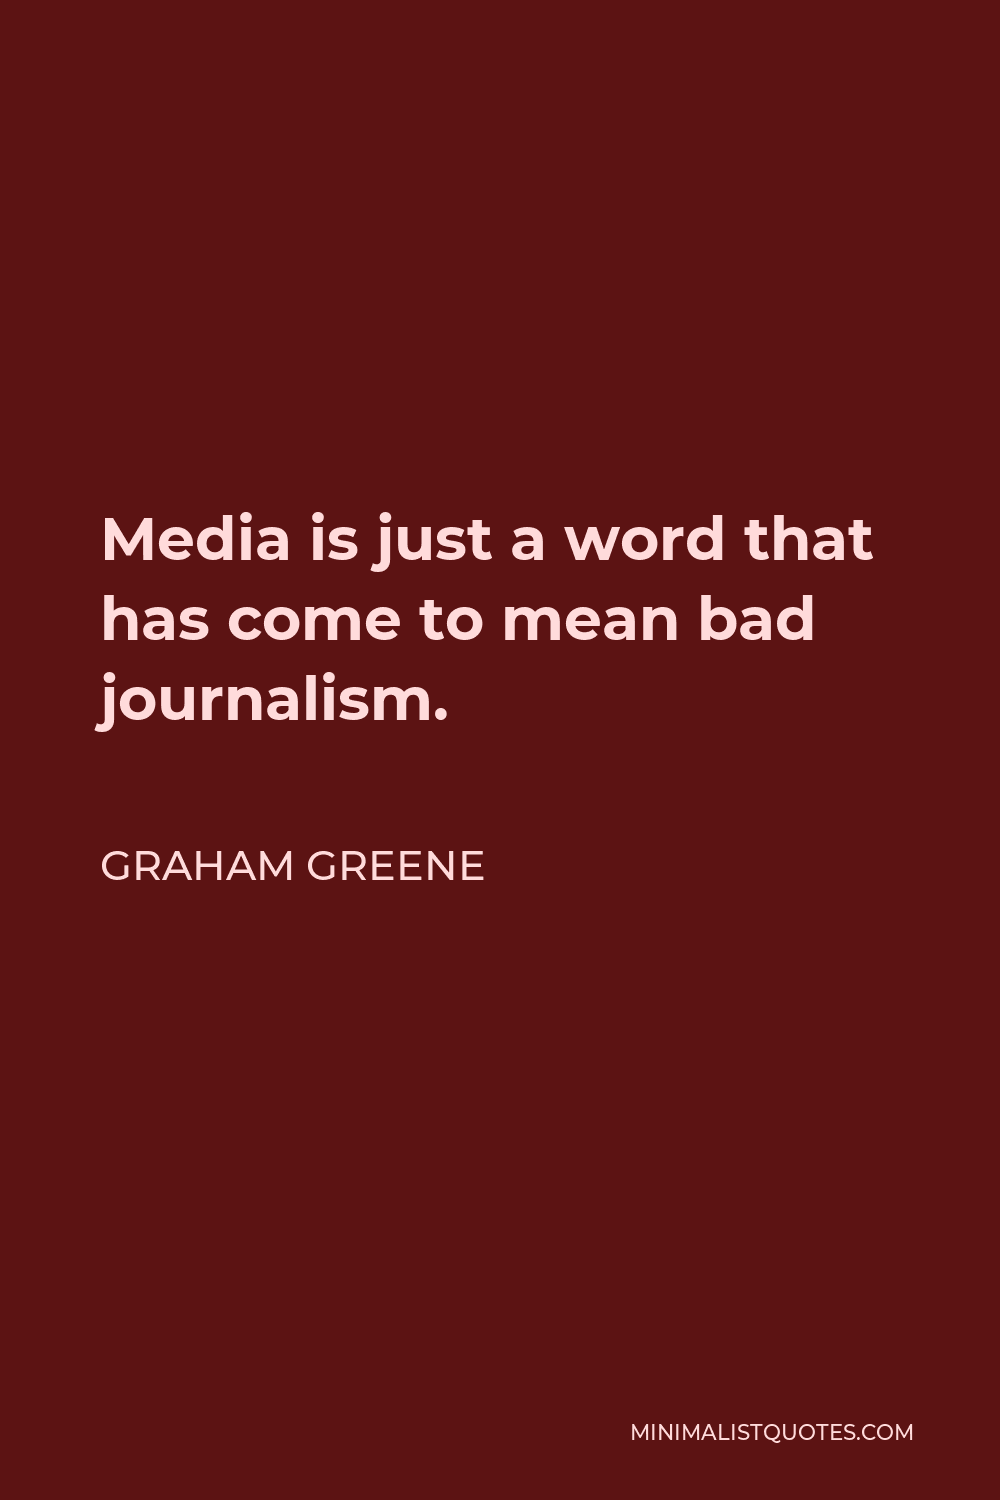 Graham Greene Quote - Media is just a word that has come to mean bad journalism.